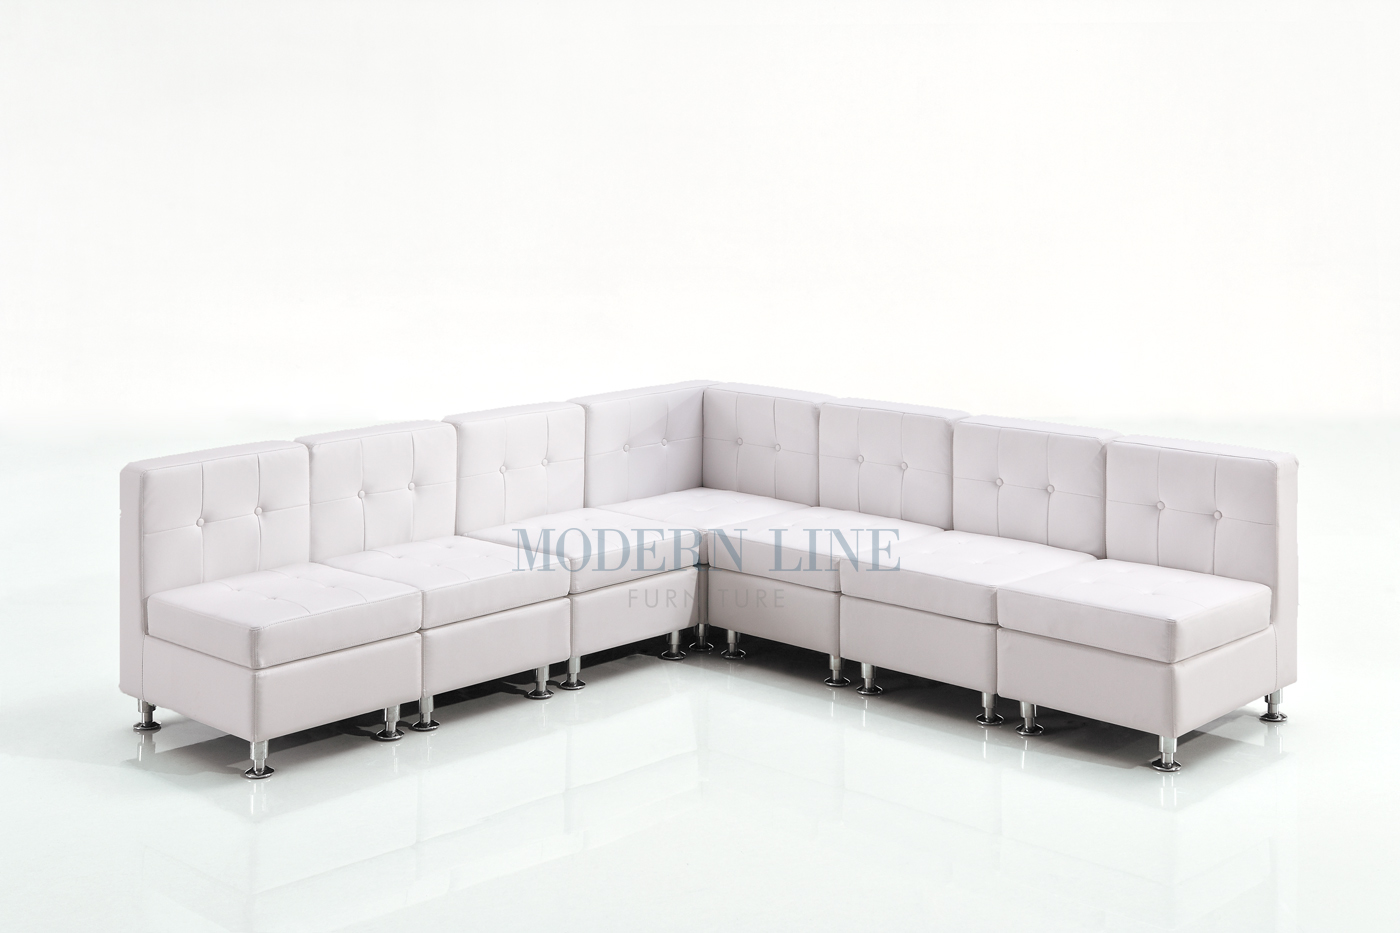 Modern line furniture commercial furniture custom made furniture seating collection modular white leather armless l shape sectional